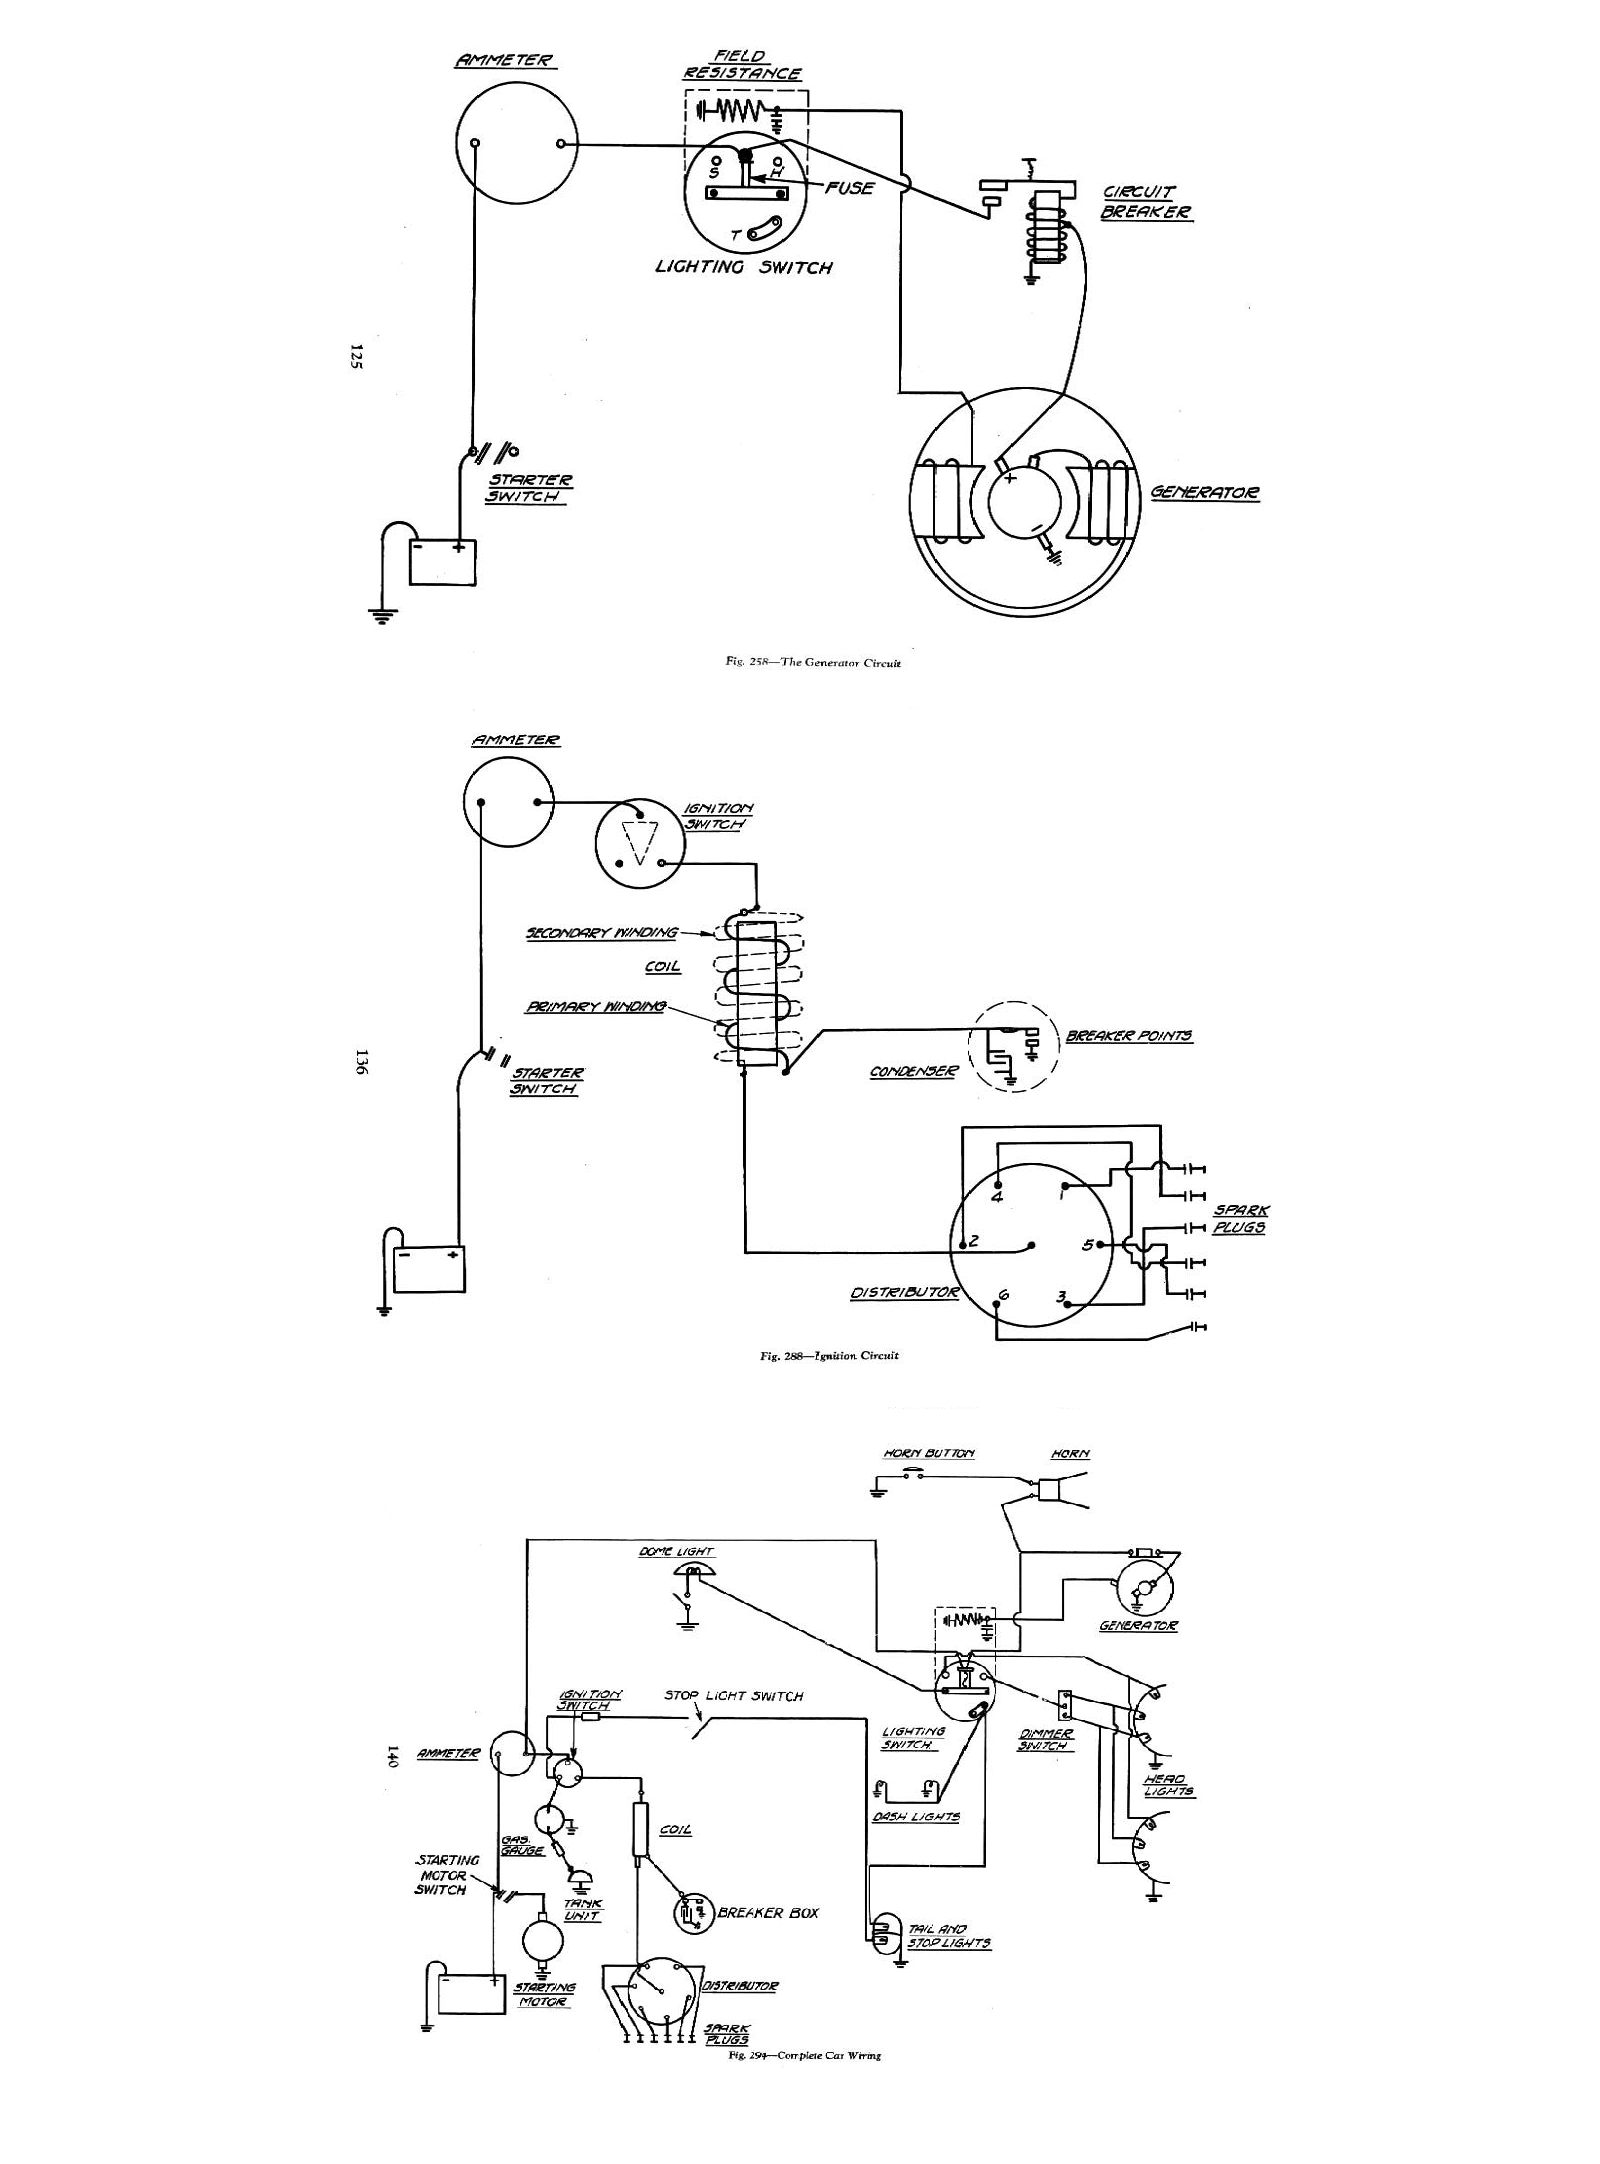 1934, 1934 Wiring Diagrams · 1934 General Wiring ...